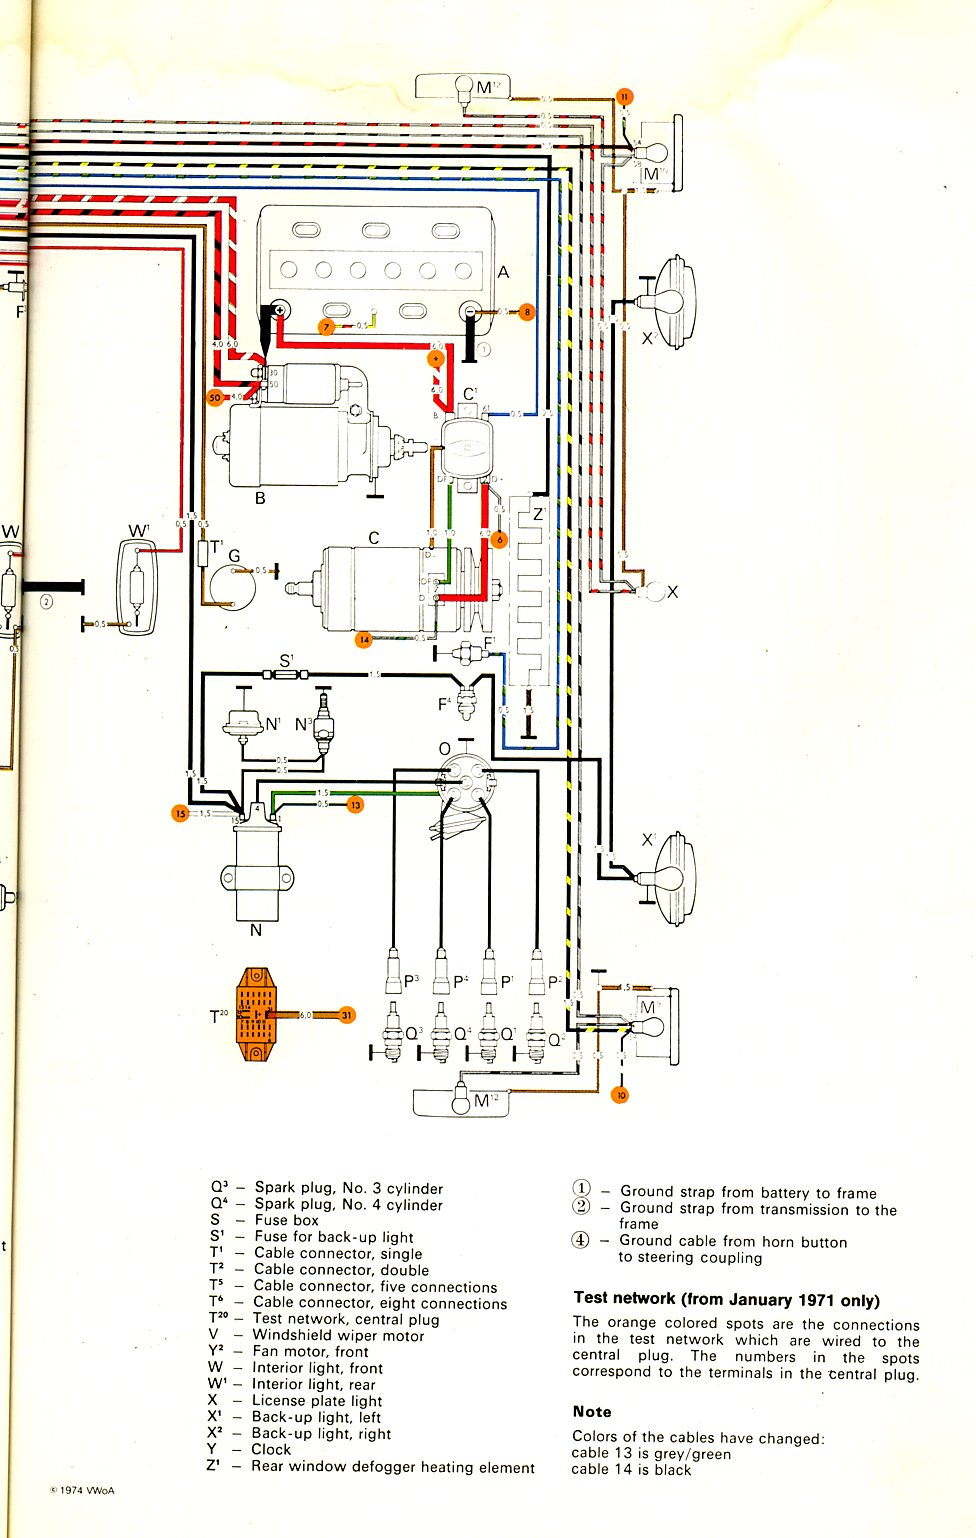 1980 vanagon wire diagrams wiring diagram all data rh 3 14 19 feuerwehr randegg de